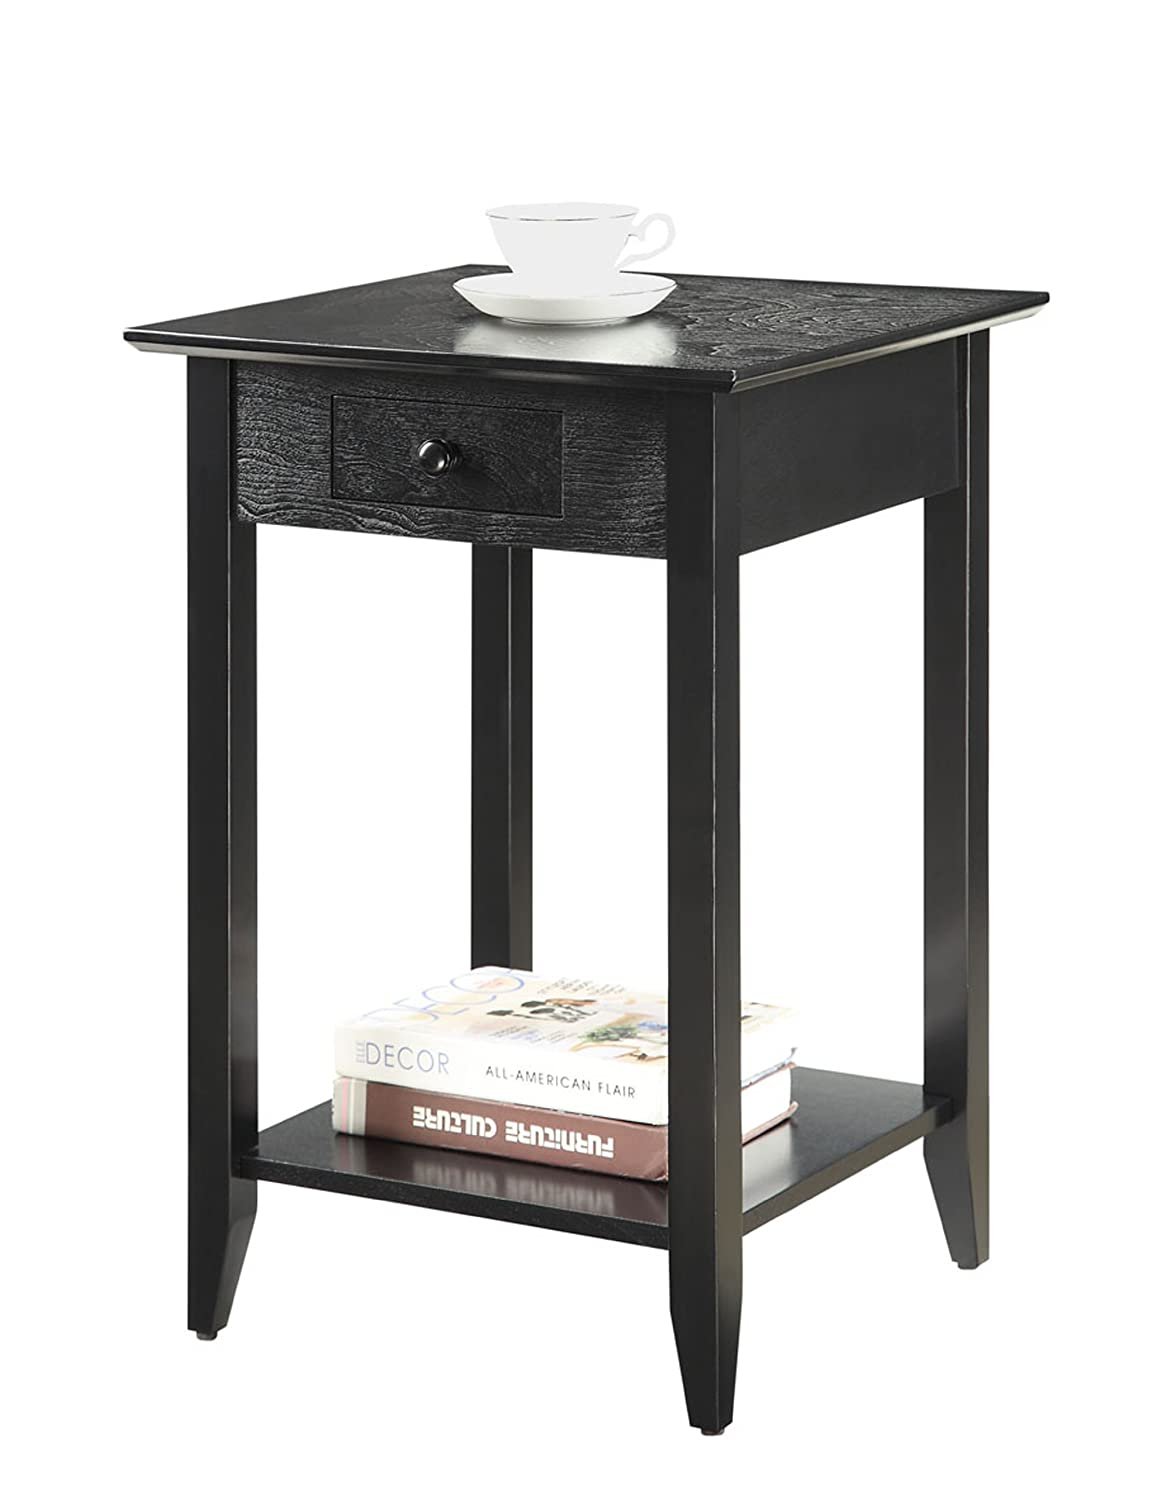 End table with drawer - Amazon Com Convenience Concepts American Heritage End Table With Shelf And Drawer Black Kitchen Dining